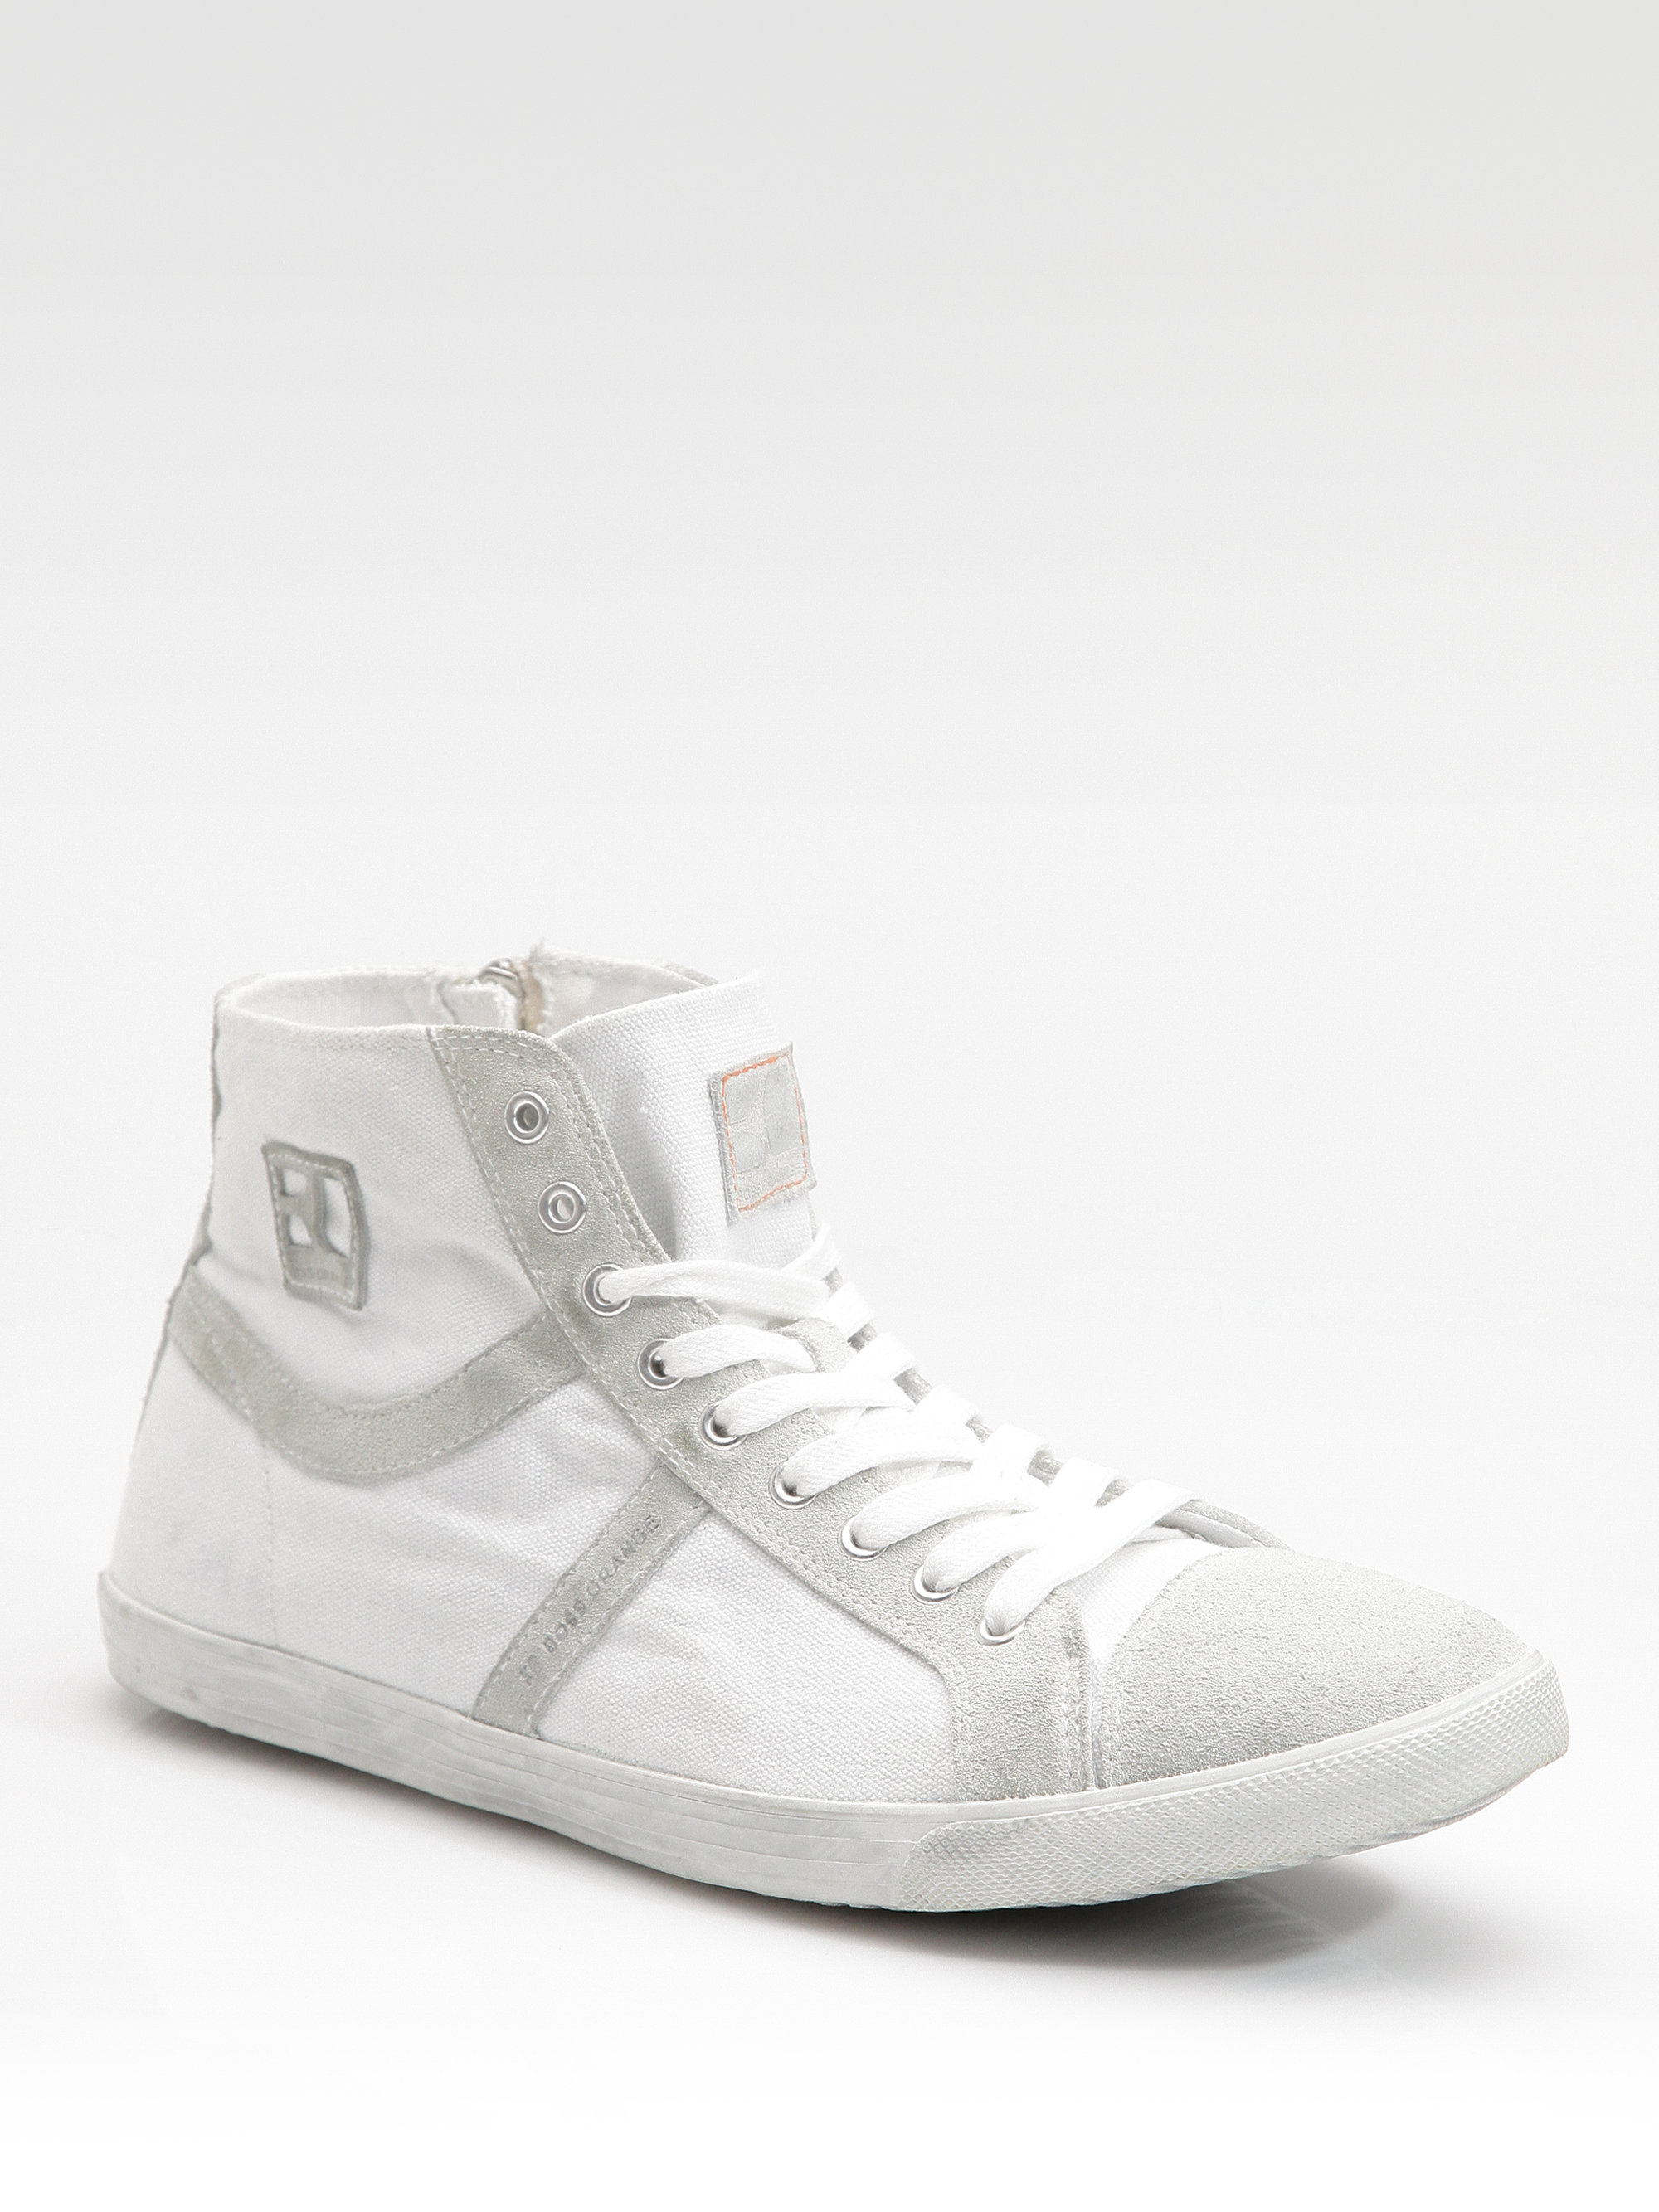 boss orange beckville hightop sneakers in white for men lyst. Black Bedroom Furniture Sets. Home Design Ideas